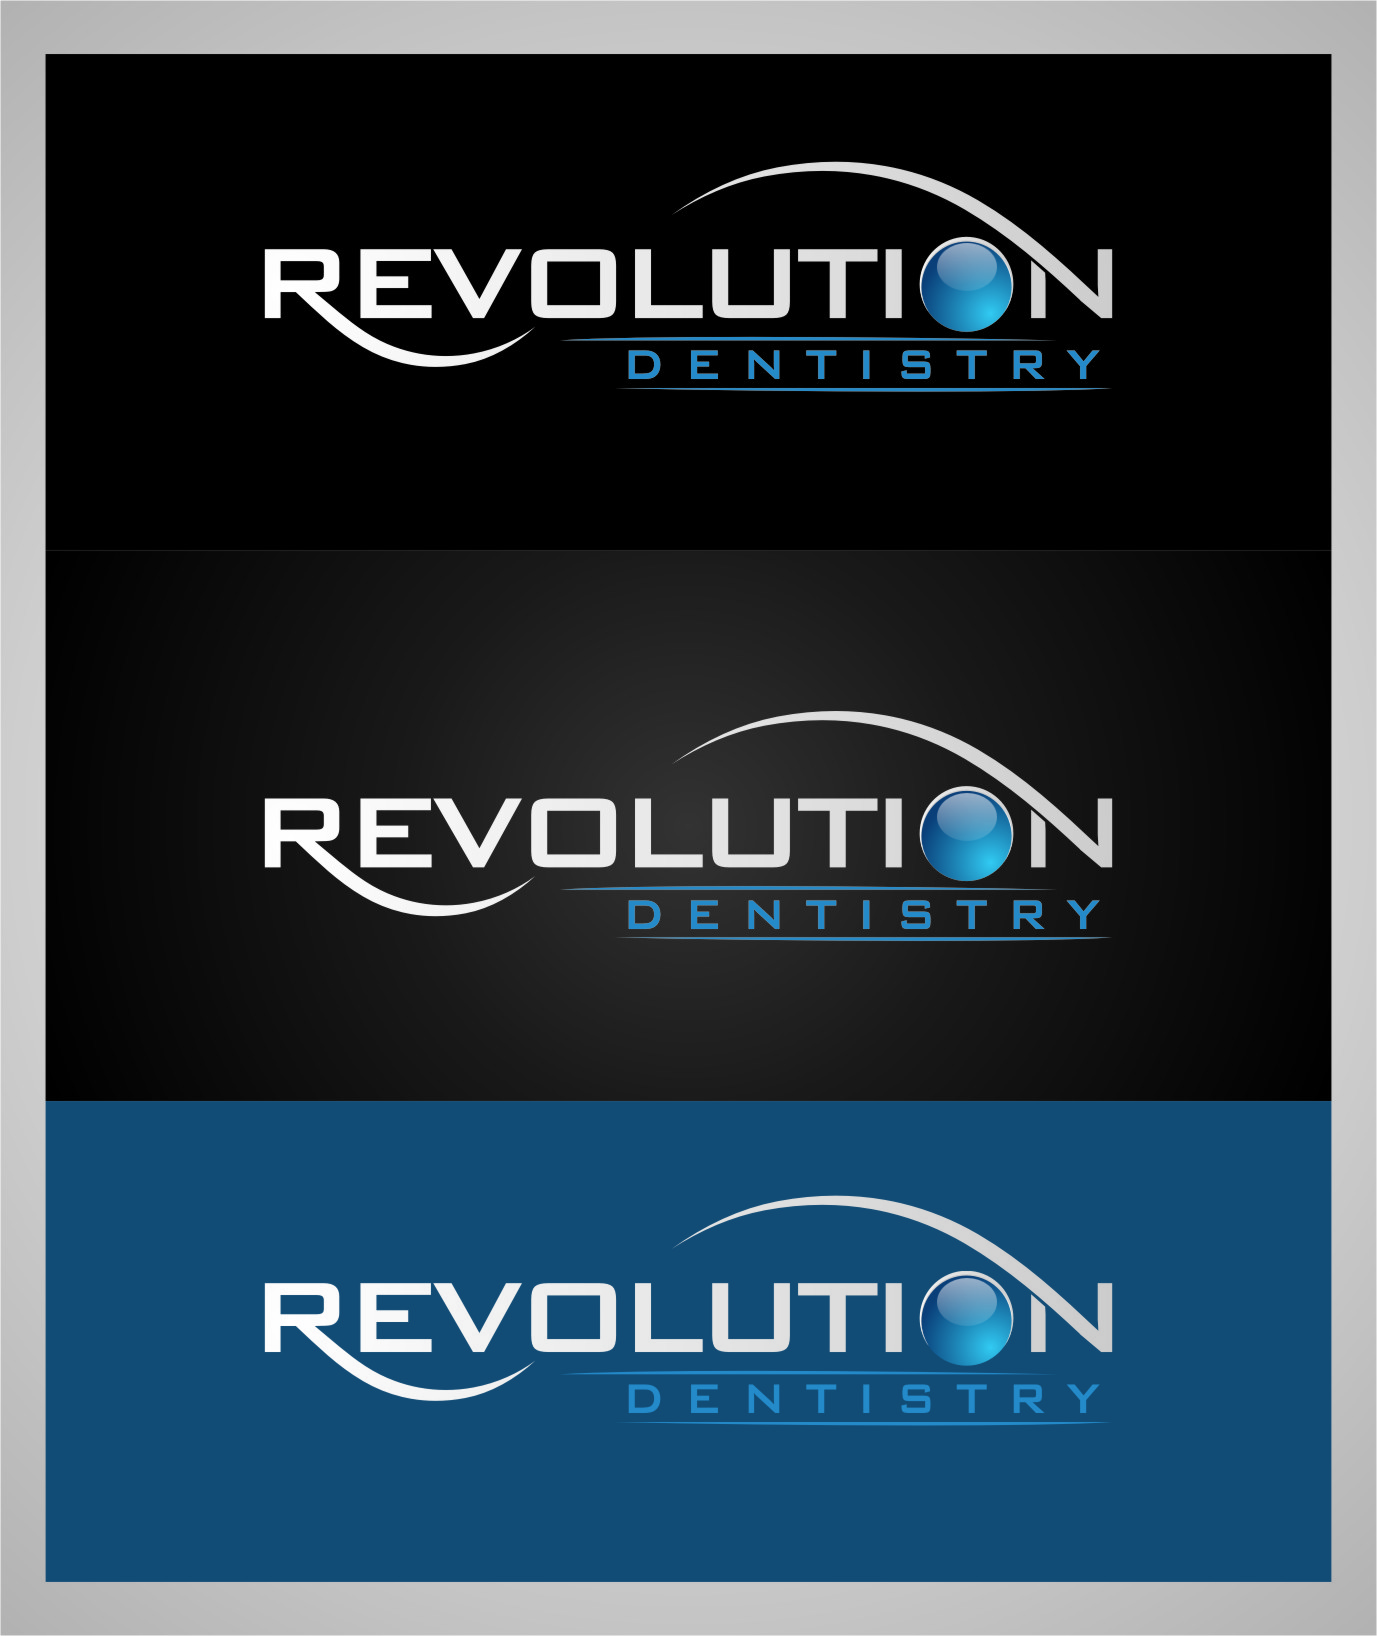 Logo Design by RasYa Muhammad Athaya - Entry No. 108 in the Logo Design Contest Artistic Logo Design for Revolution Dentistry.